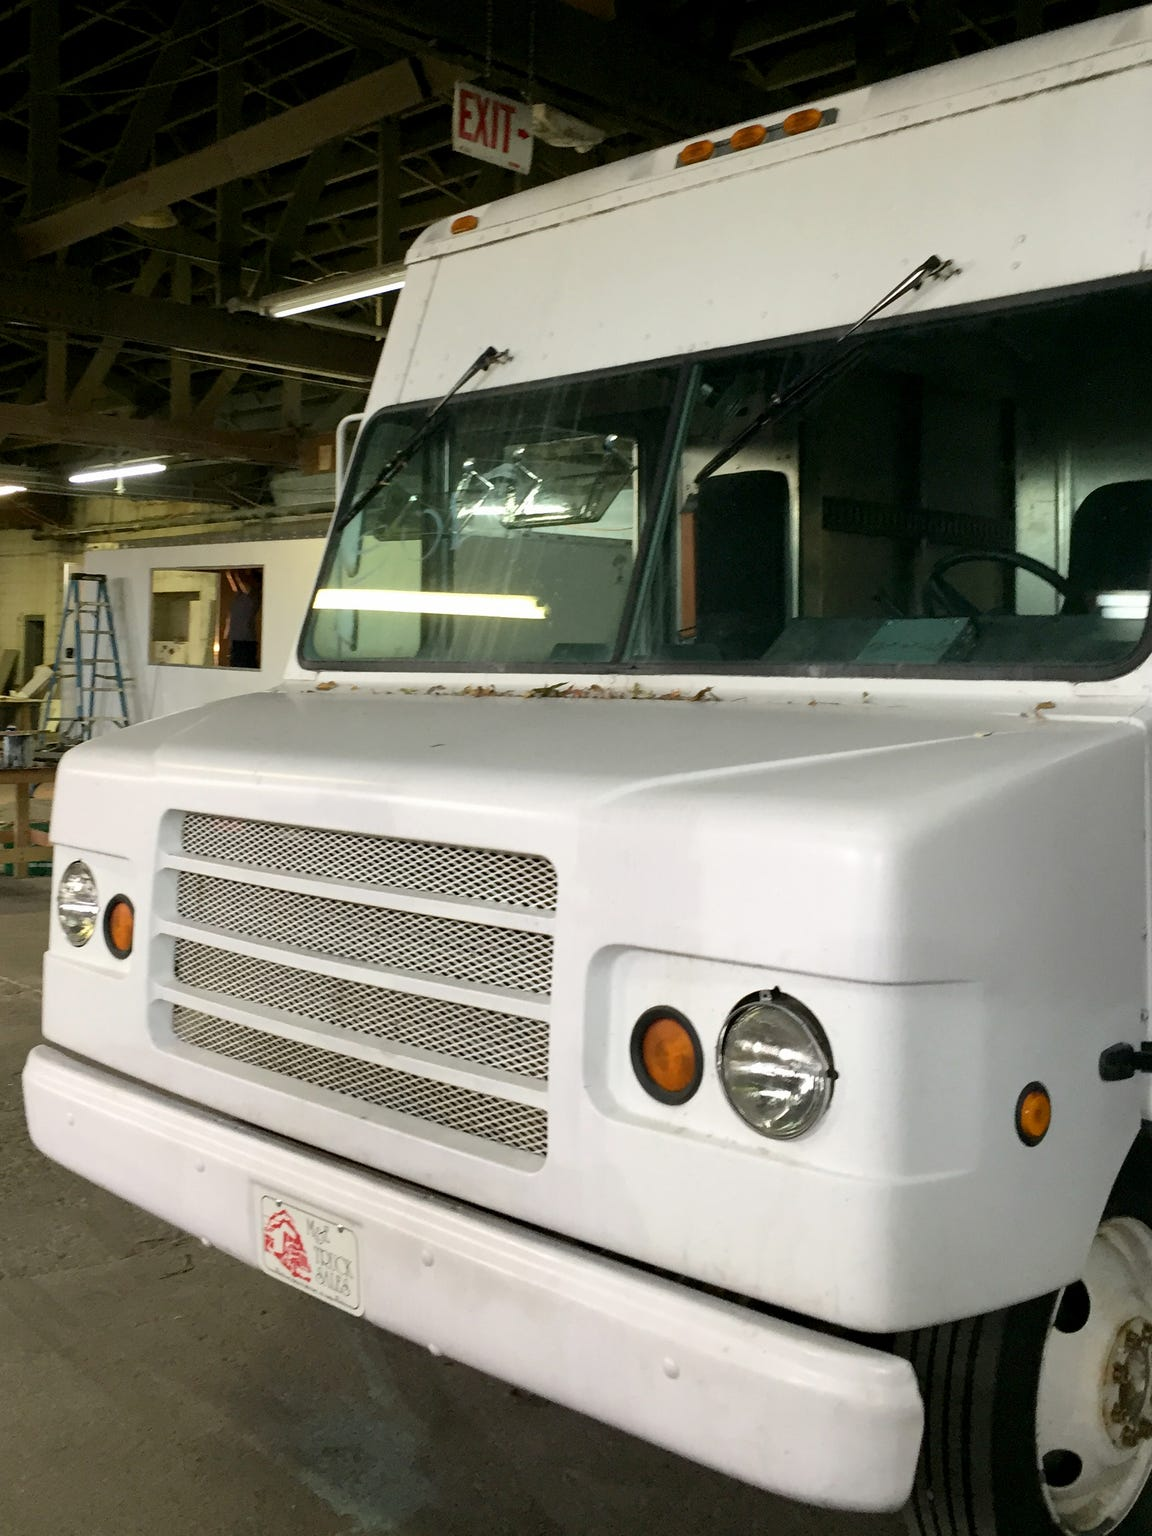 Boston restaurateurs paid a $42,500 deposit to M Design Vehicles for their food truck. This is the truck they were promised, shown in M Design's former Norman Street garage.